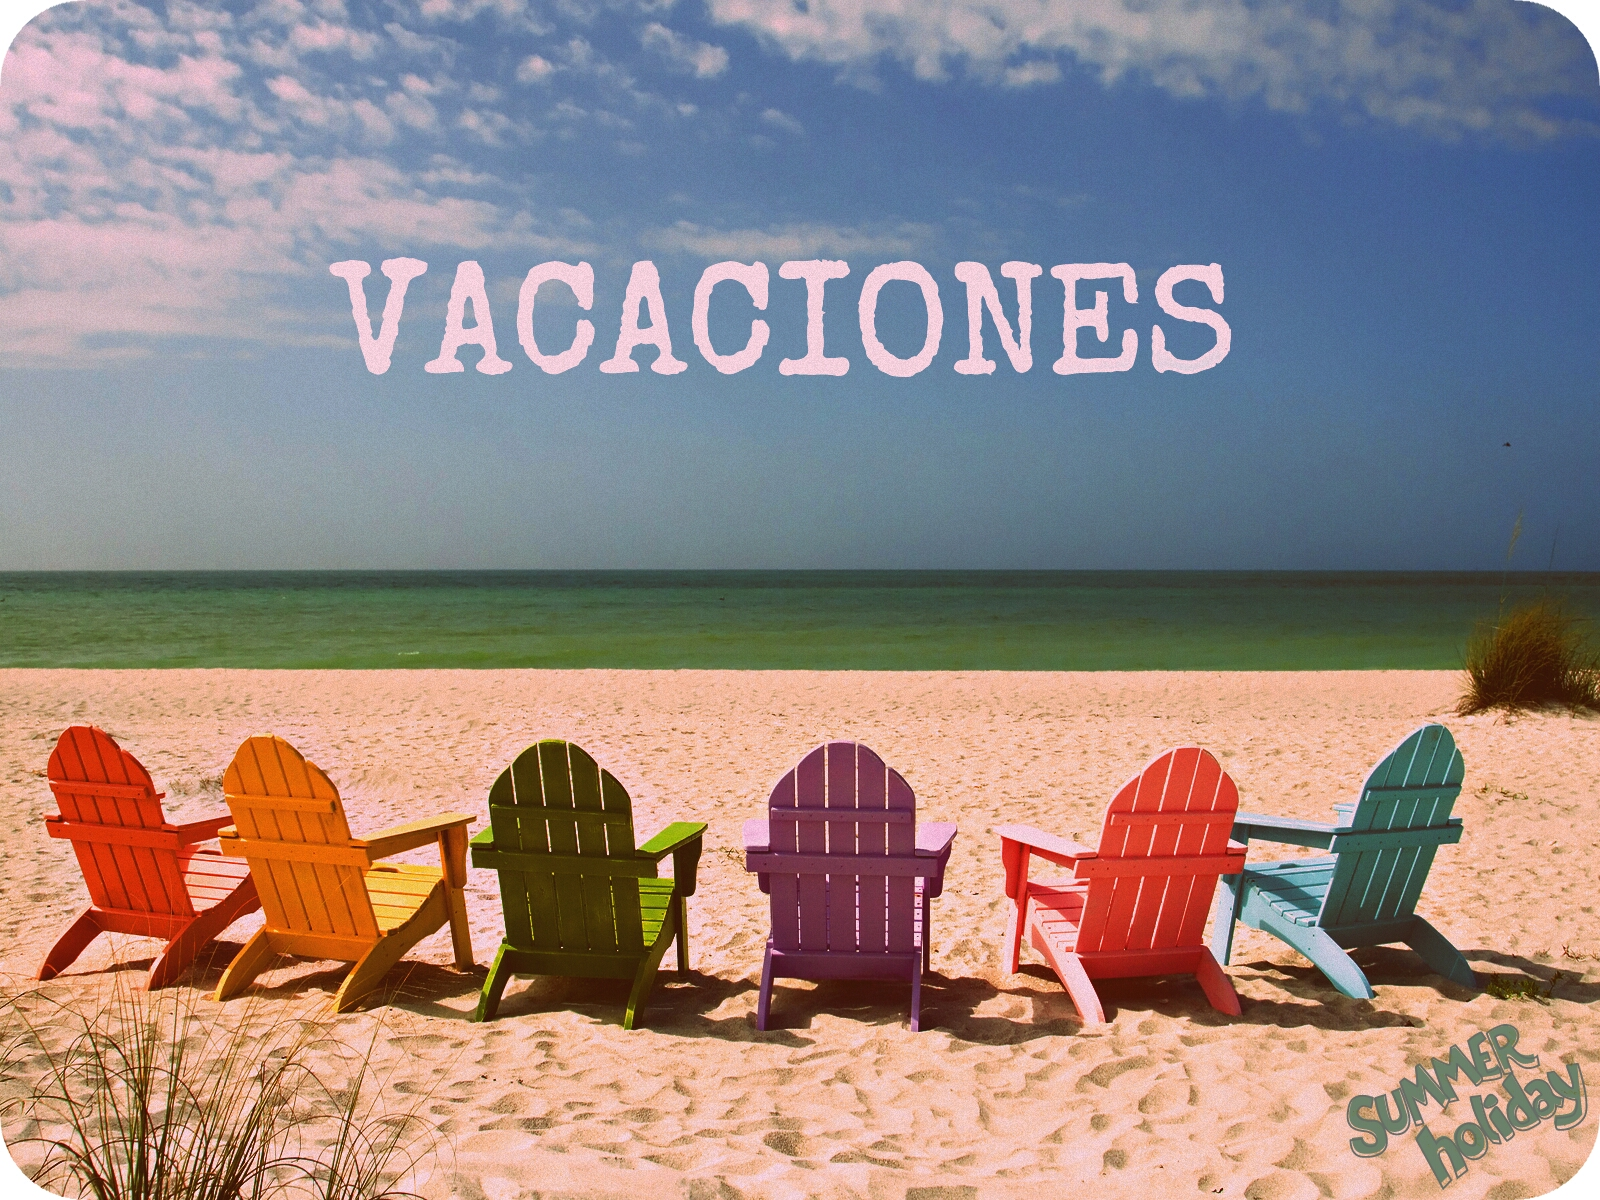 mis vacaciones Mis vacaciones en 1, 5, o 10 palabras spanish writing and drawing activity subject foreign language, spanish grade levels.